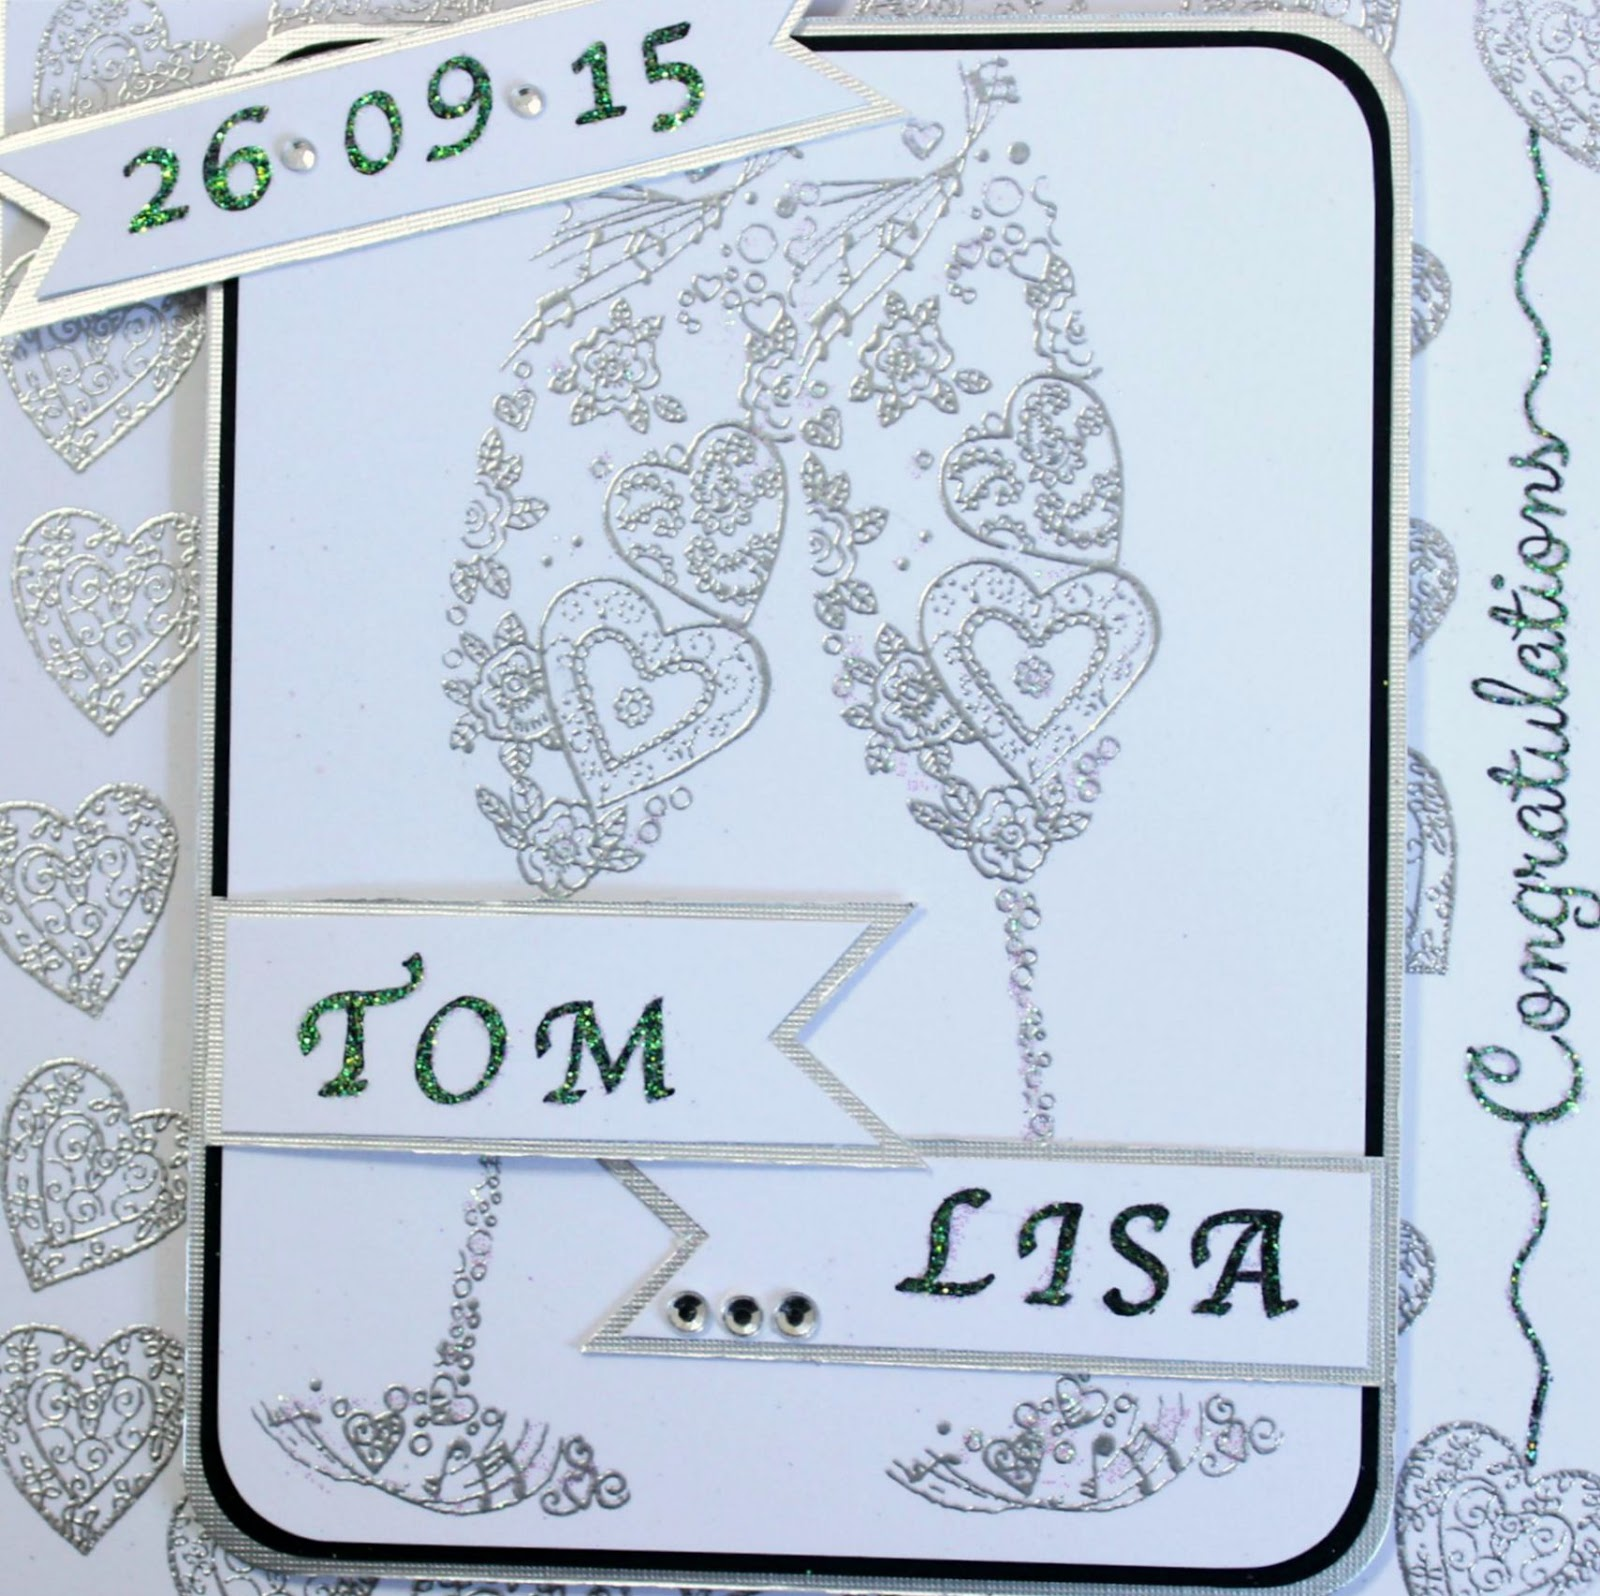 As With Any Other Stamping Embossing Can Be Used For A Main Image Well Backgrounds I Have Embossed Both The Champagne Glasses And Hearts In